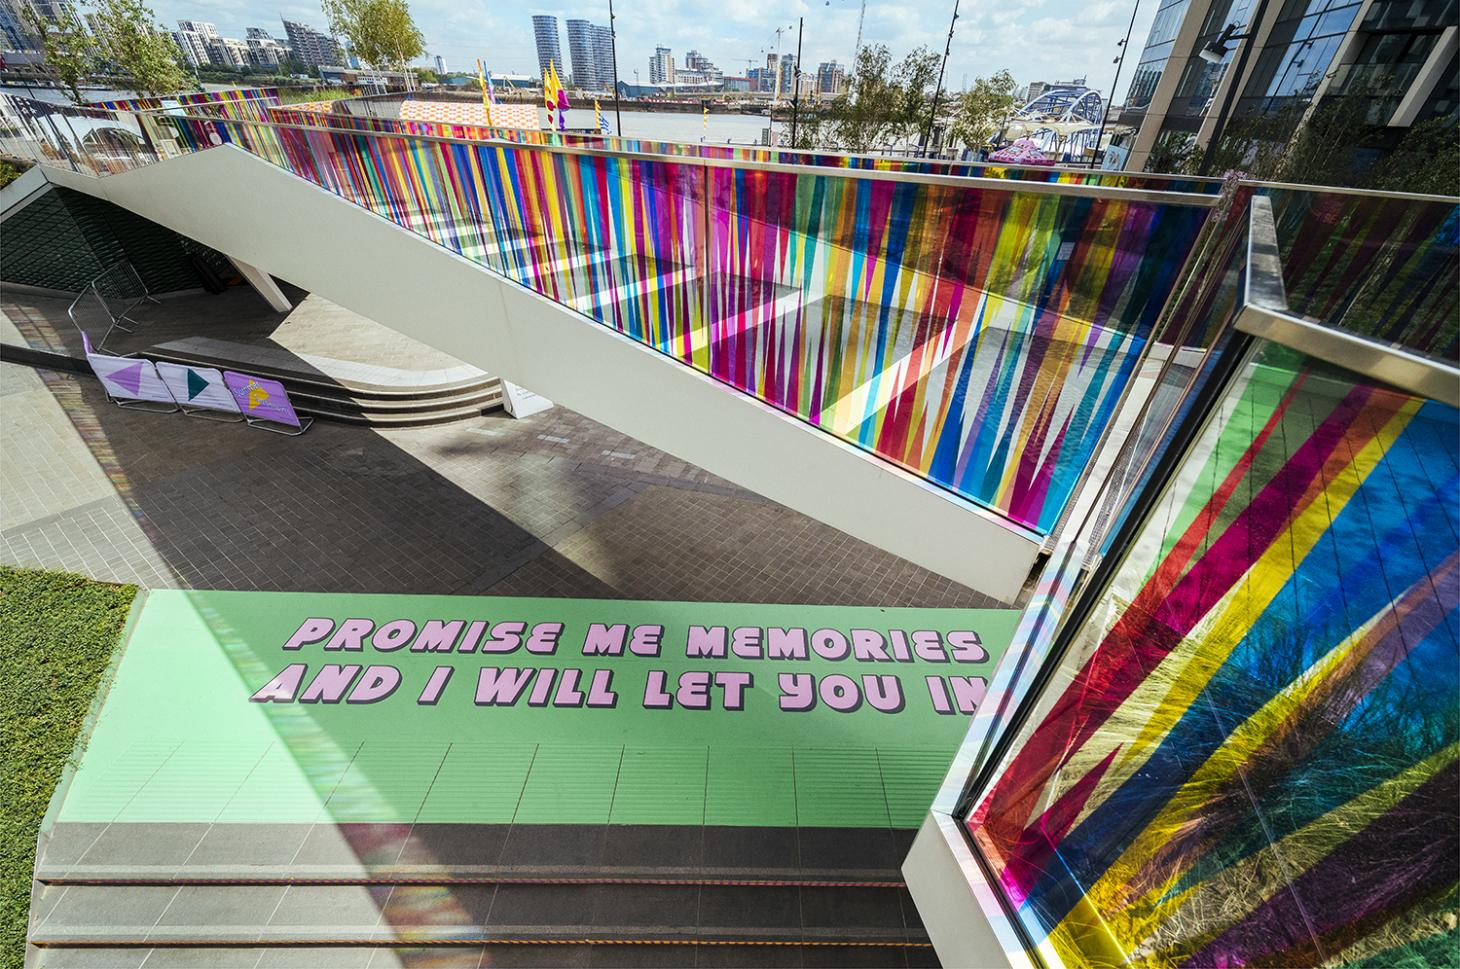 """A floor painting with the words """"Promise me memories and I will let you in"""" in pink type over a green background, created by Yinka Ilori for Greenwich Peninsula"""